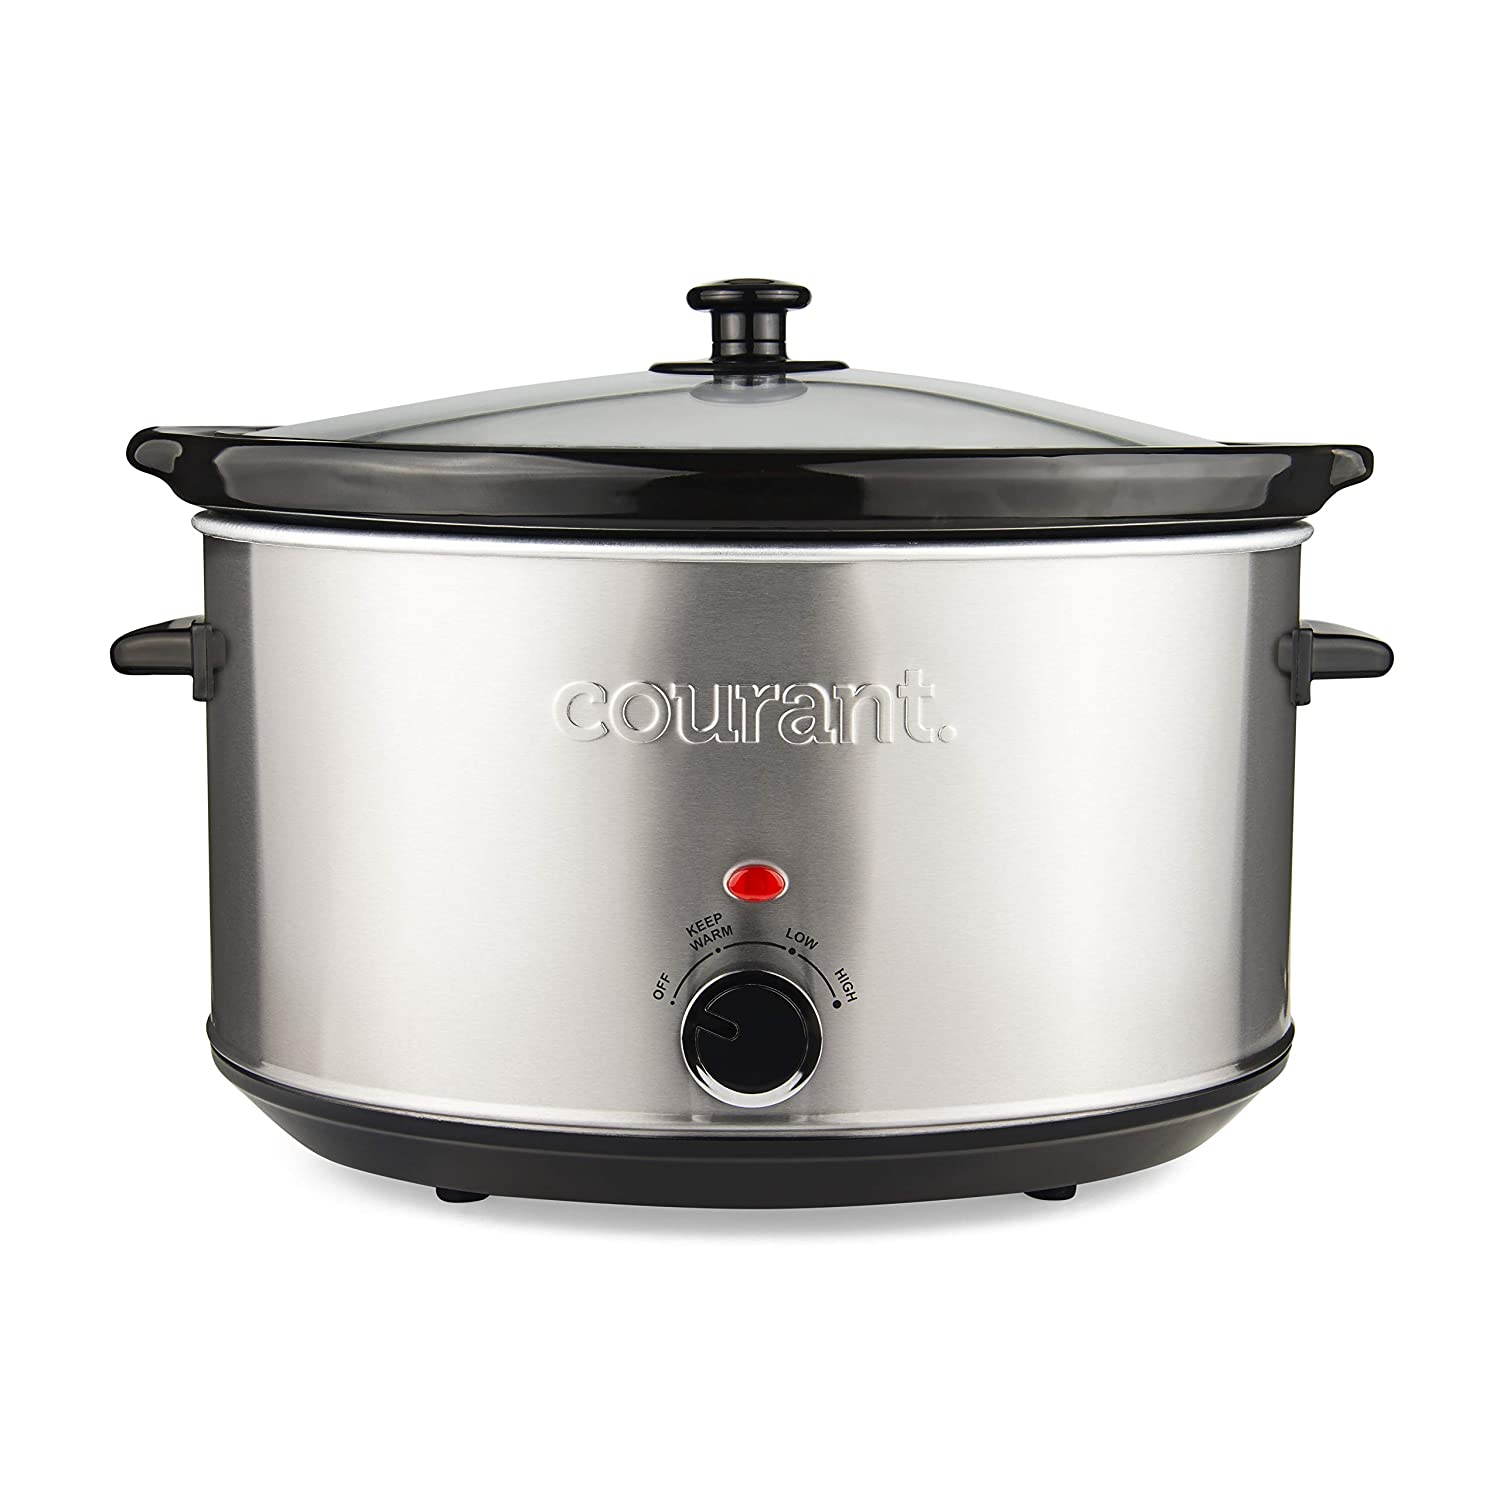 Courant Oval Slow Cooker Crock, with Easy Options 8.5 Quart Dishwasher Safe Pot, Stainless Steel